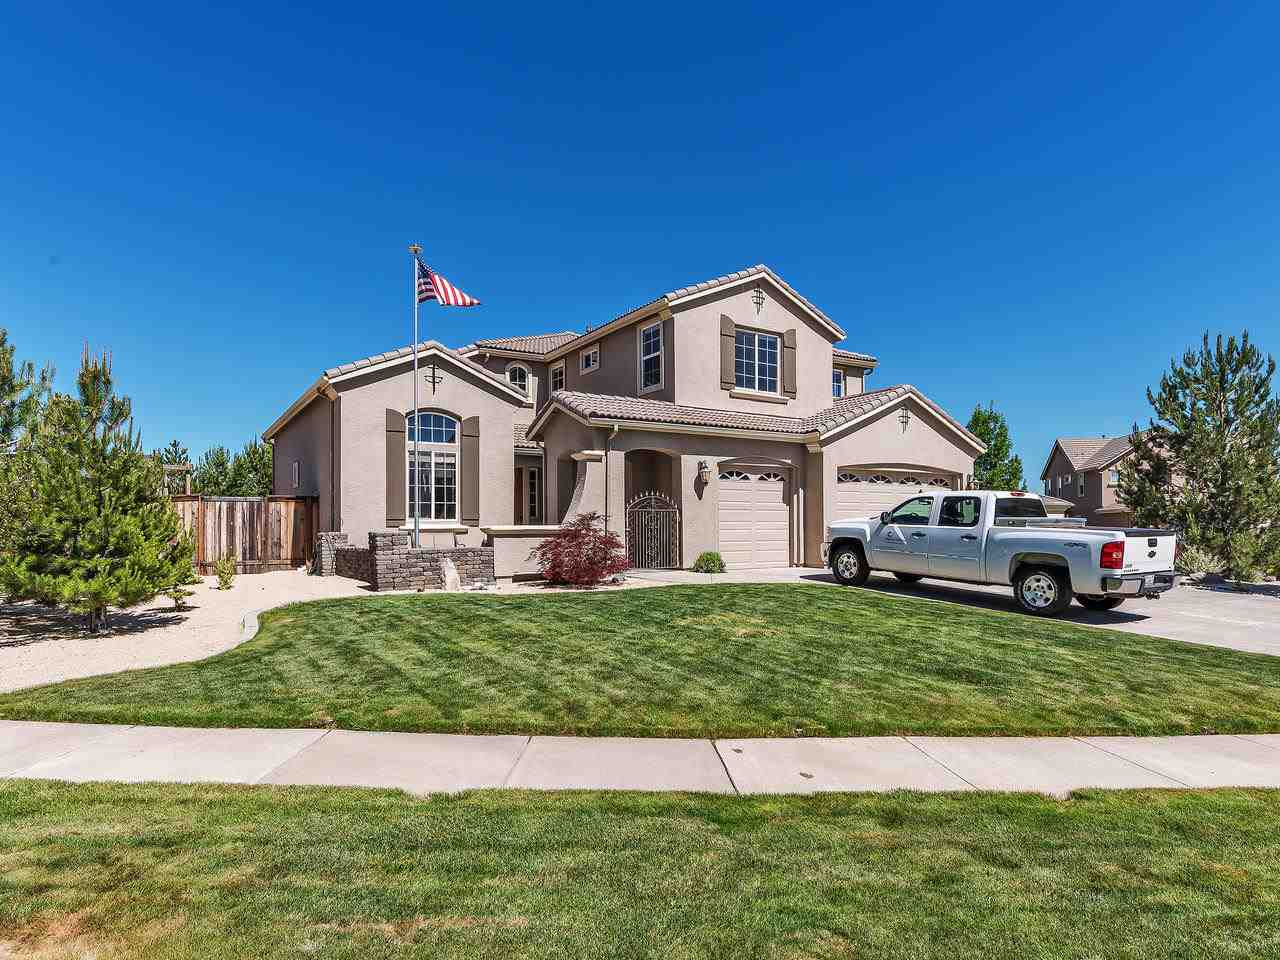 7110 Lodgepole Pine Court, Reno, NV 89523-3827